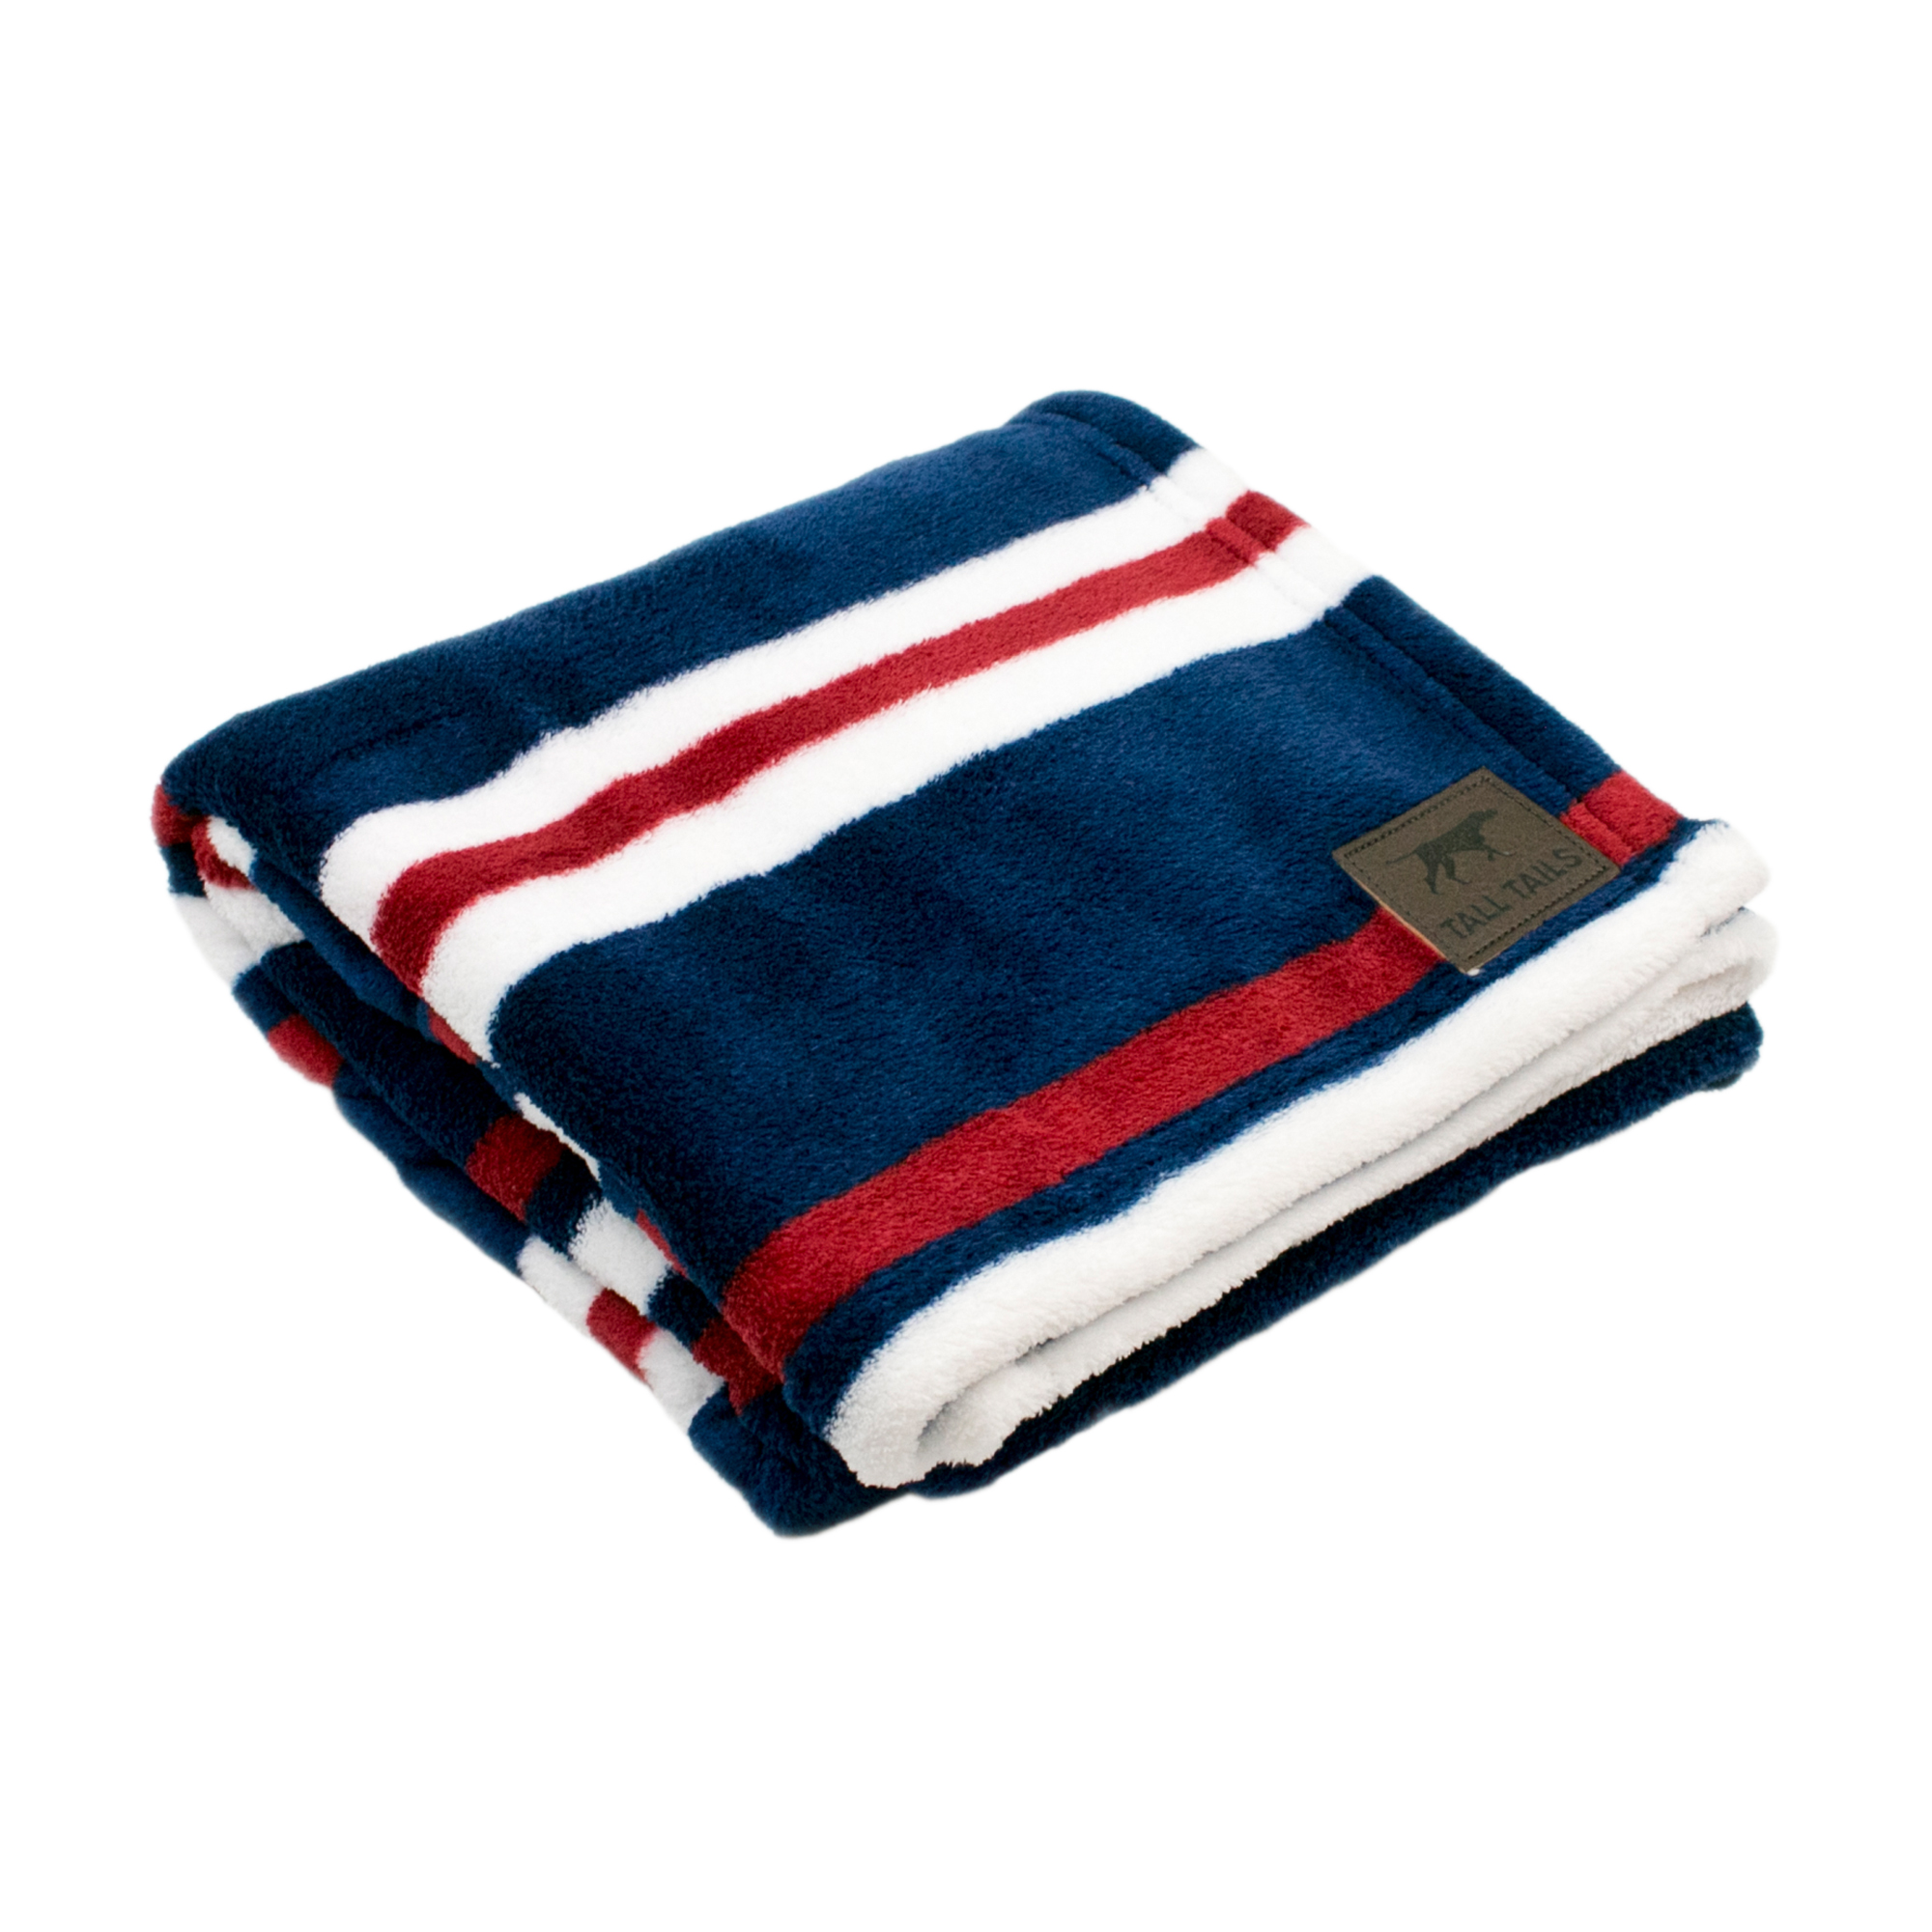 Tall Tails Nautical Stripe Dog Blanket, 30x40 (Size: 30x40) Image